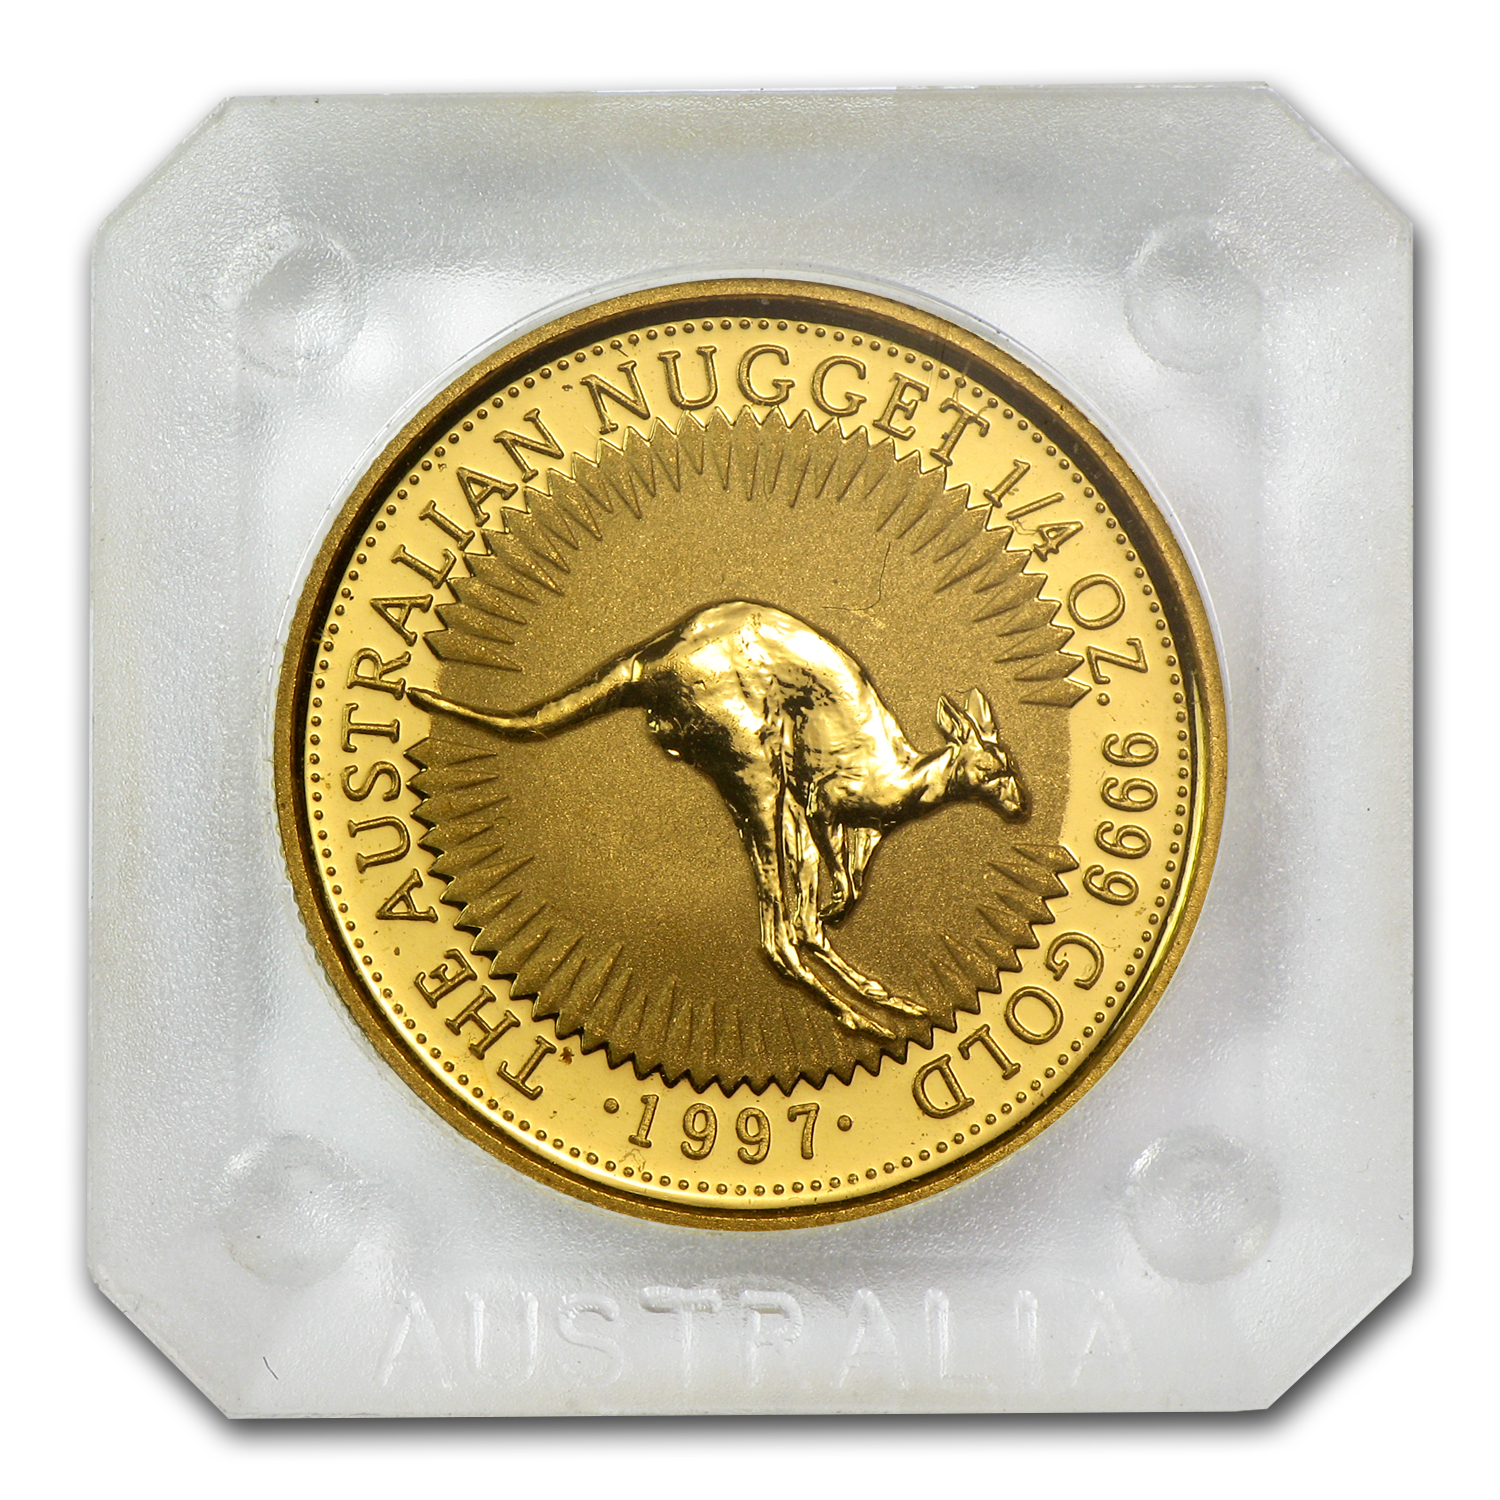 1997 1/4 oz Australian Gold Nugget